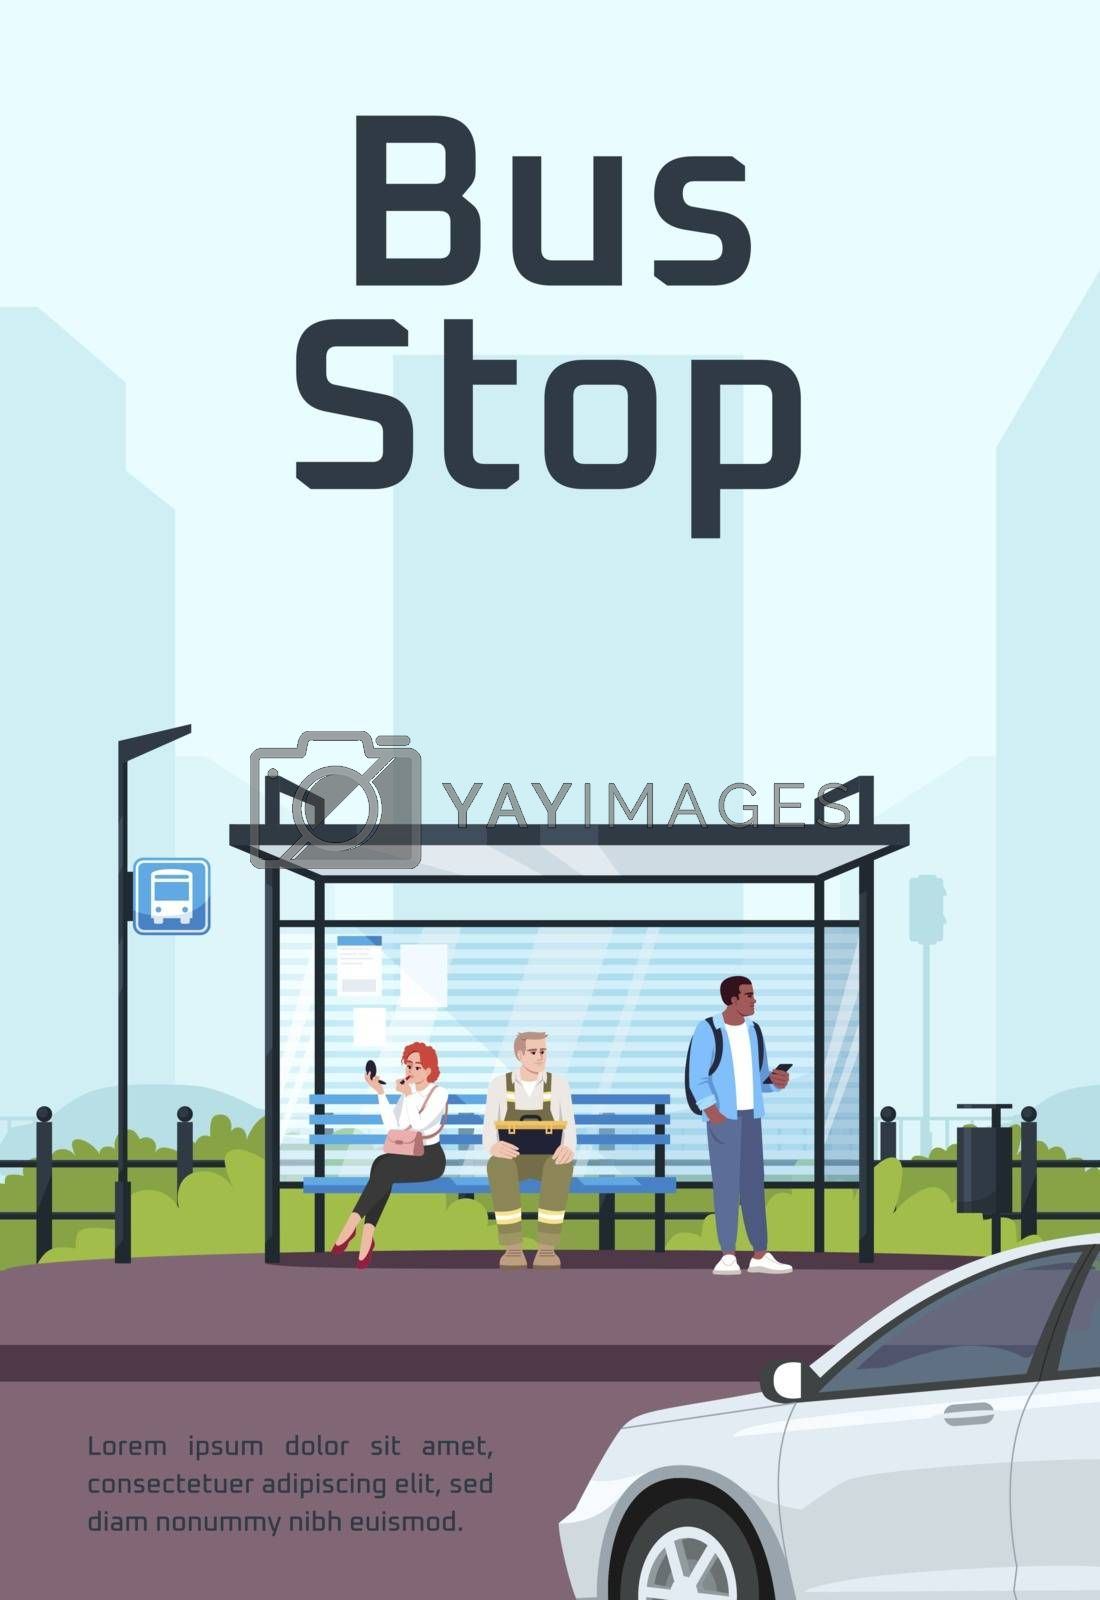 Royalty free image of Bus stop poster template by bsd